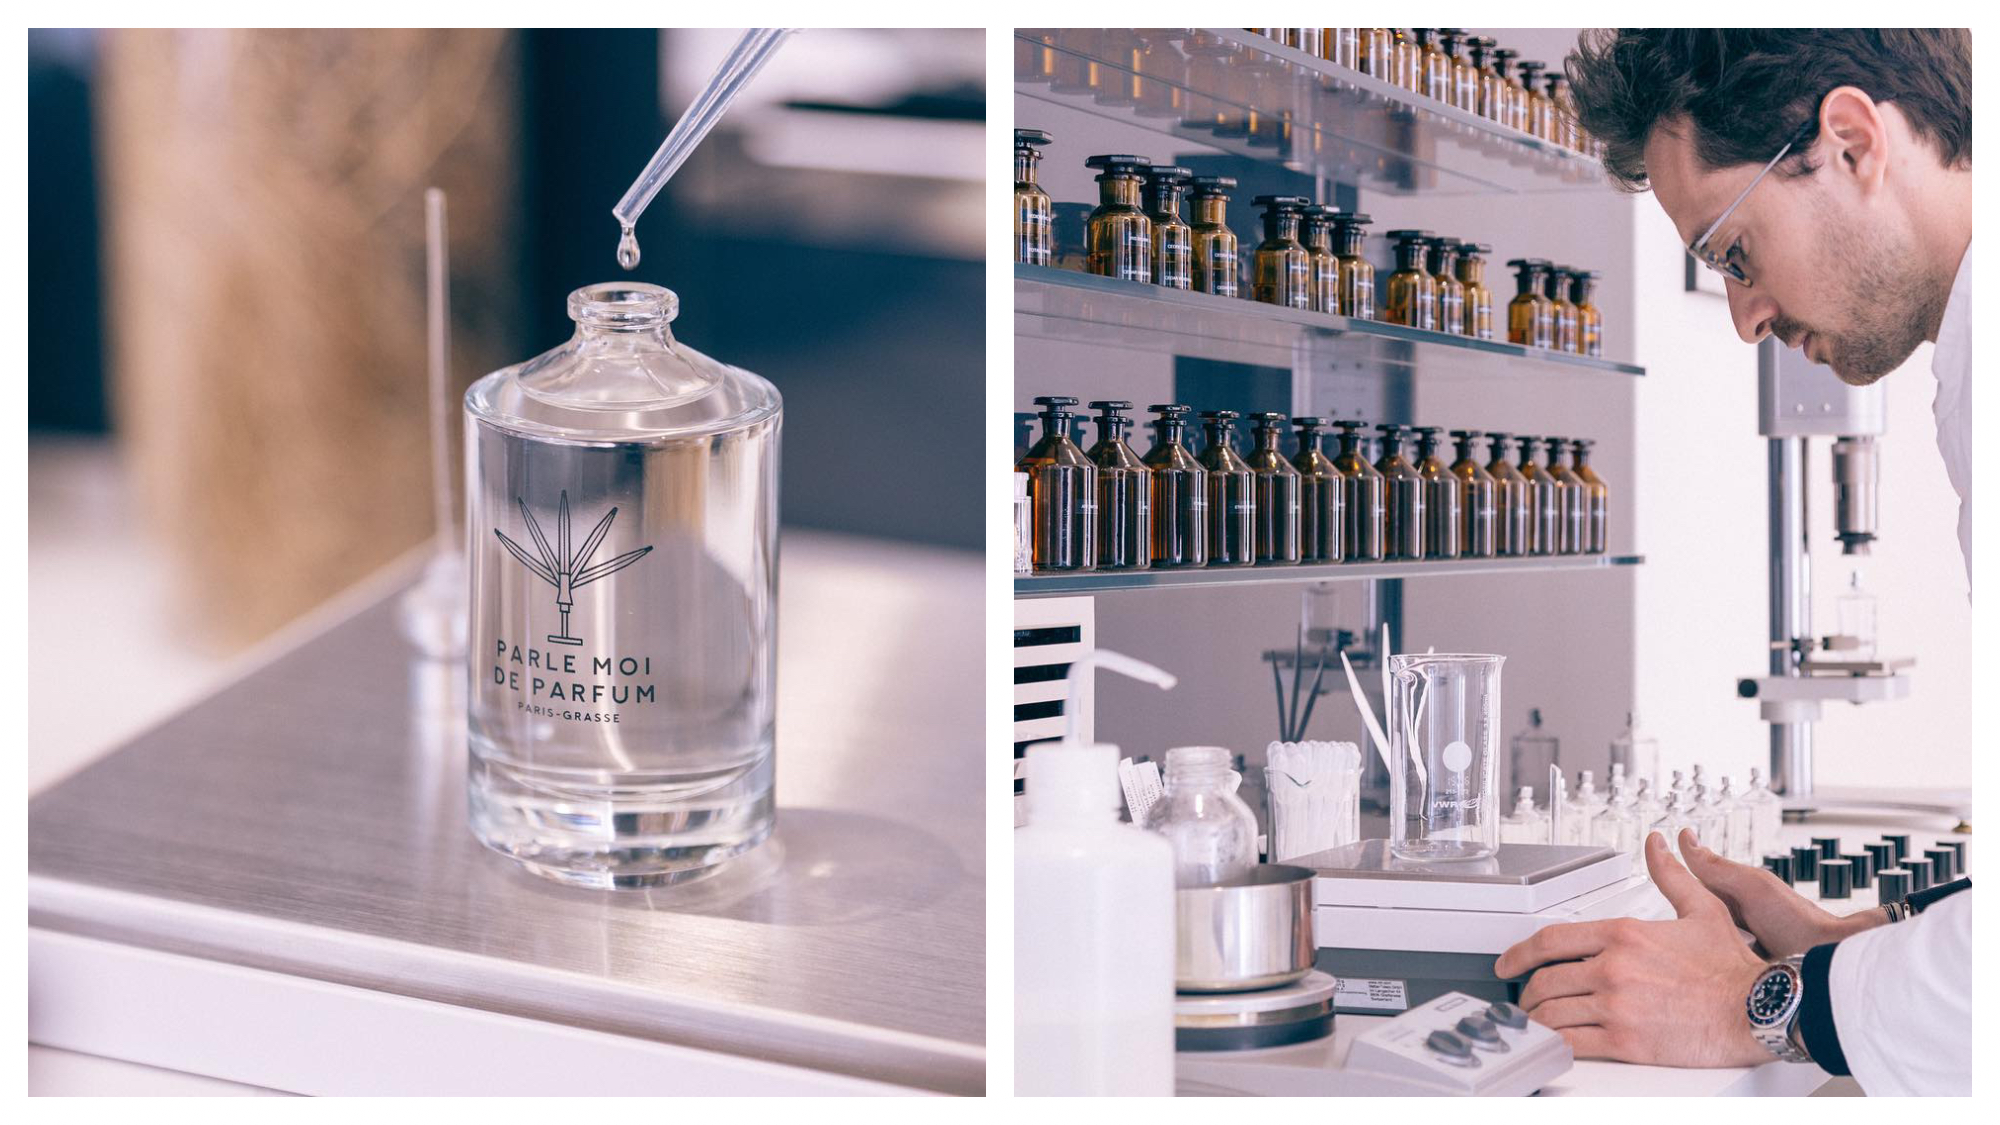 On left: A single drop of perfume falls daintily from a pipet at the laboratory of Paris-based fragrance company Parle-Moi de Parfum. On right: A perfumer works in the laboratory of Paris-based fragrance company Parle-Moi de Parfum, founded by Michel Almairac, who designed perfume for the likes of Dior and Gucci.